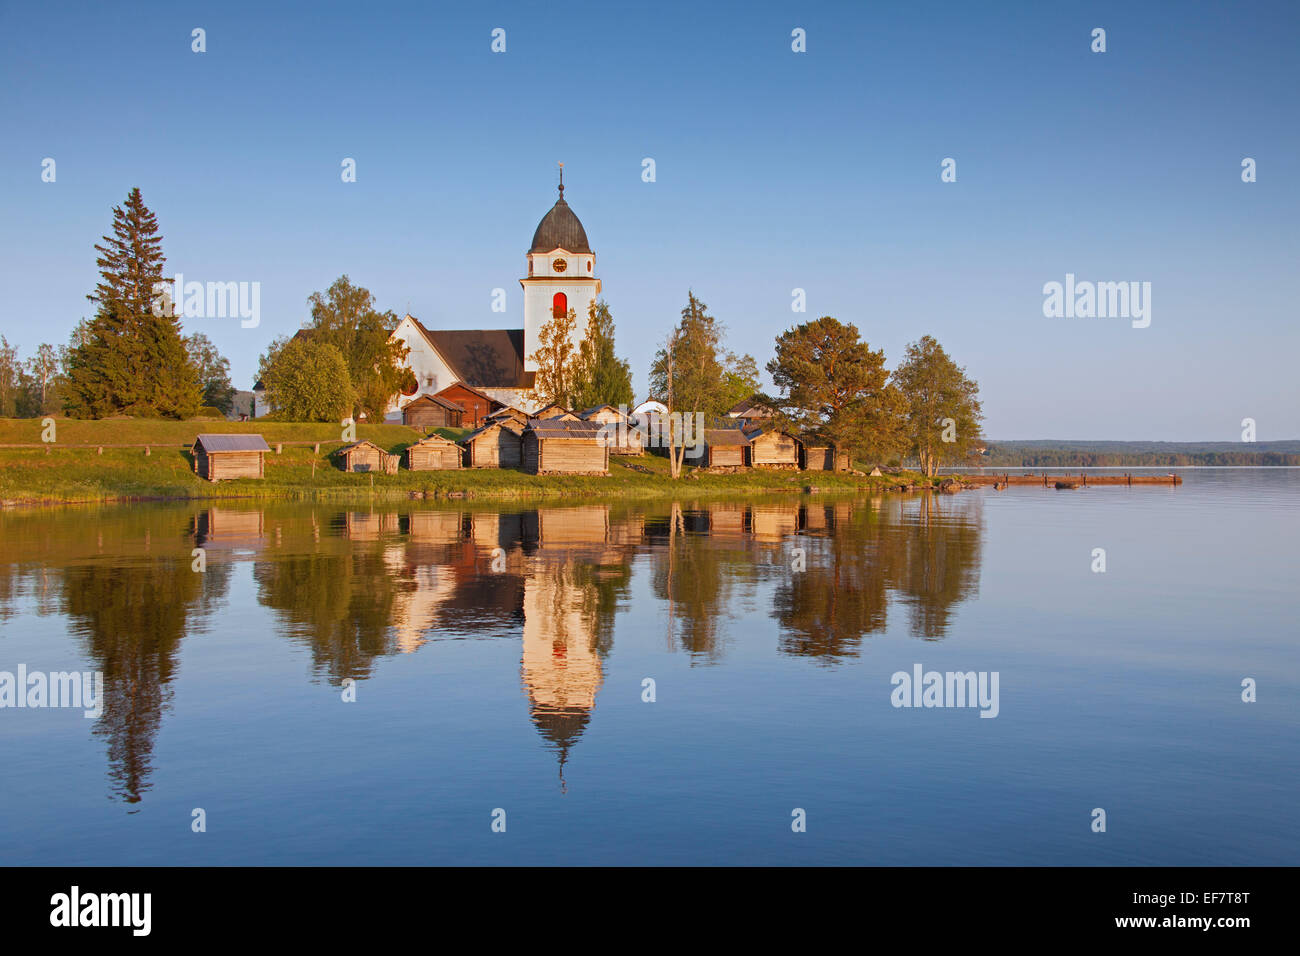 The picturesque old Rättvik Church surrounded by horse stables along Lake Siljan, Dalarna, Sweden Stock Photo